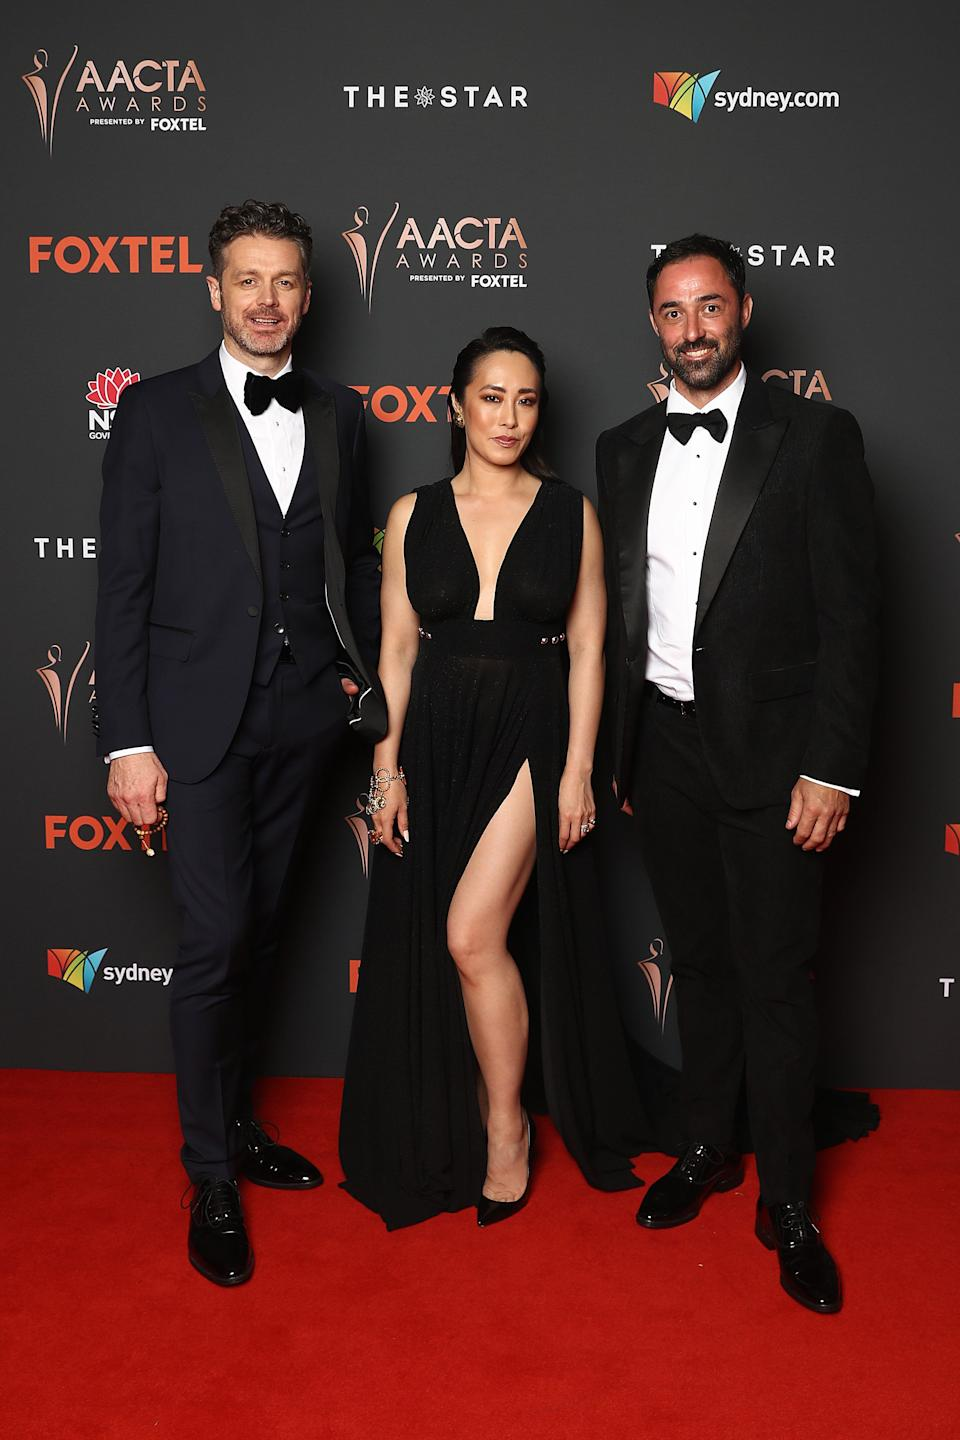 'MasterChef Australia' judges Jock Zonfrillo, Melissa Leong and Andy Allen have started filming the 2021 season. The trio pictured here at the 2020 AACTA Awards in Sydney on November 30.  (Photo: Brendon Thorne/Getty Images for AFI)